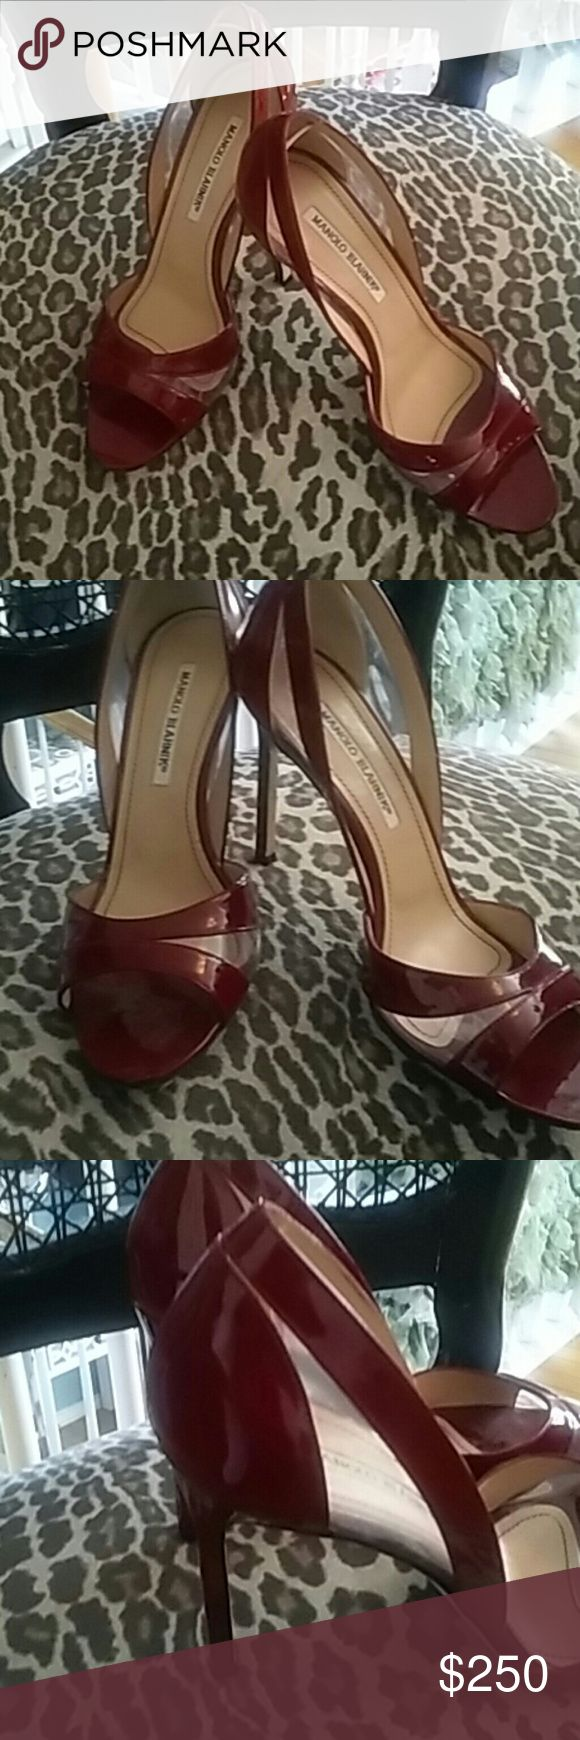 MANOLO BLAHNIK. Ladies shoes These GORGEOUS shoes by MANOLO BLAHNIK are must haves!!!!! Like new worn a few times,Transparent and Cranberry in color 3'heels.Size-38 EURO & 8 US In a smoke free environment !!! Manolo Blahnik Shoes Heels